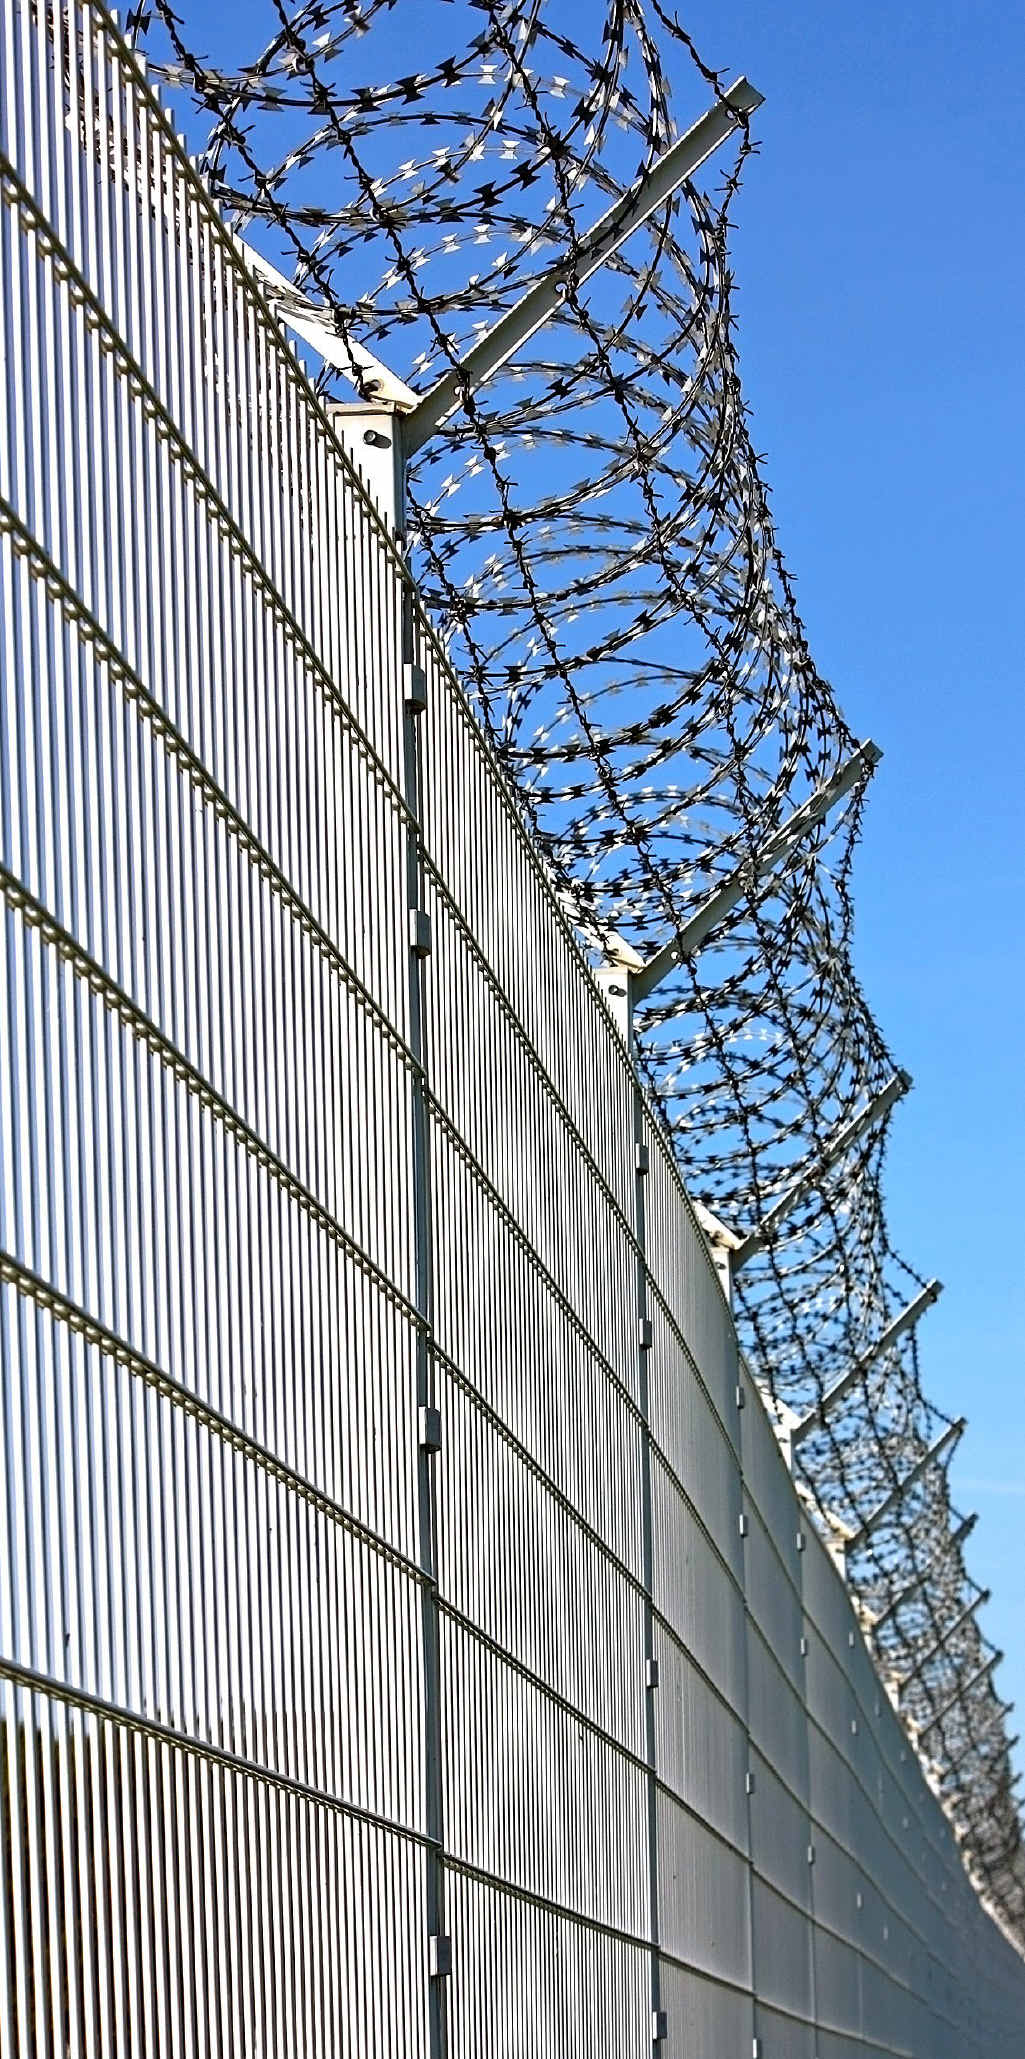 Not even razor wire could stop this young dad from making sure his child was OK.